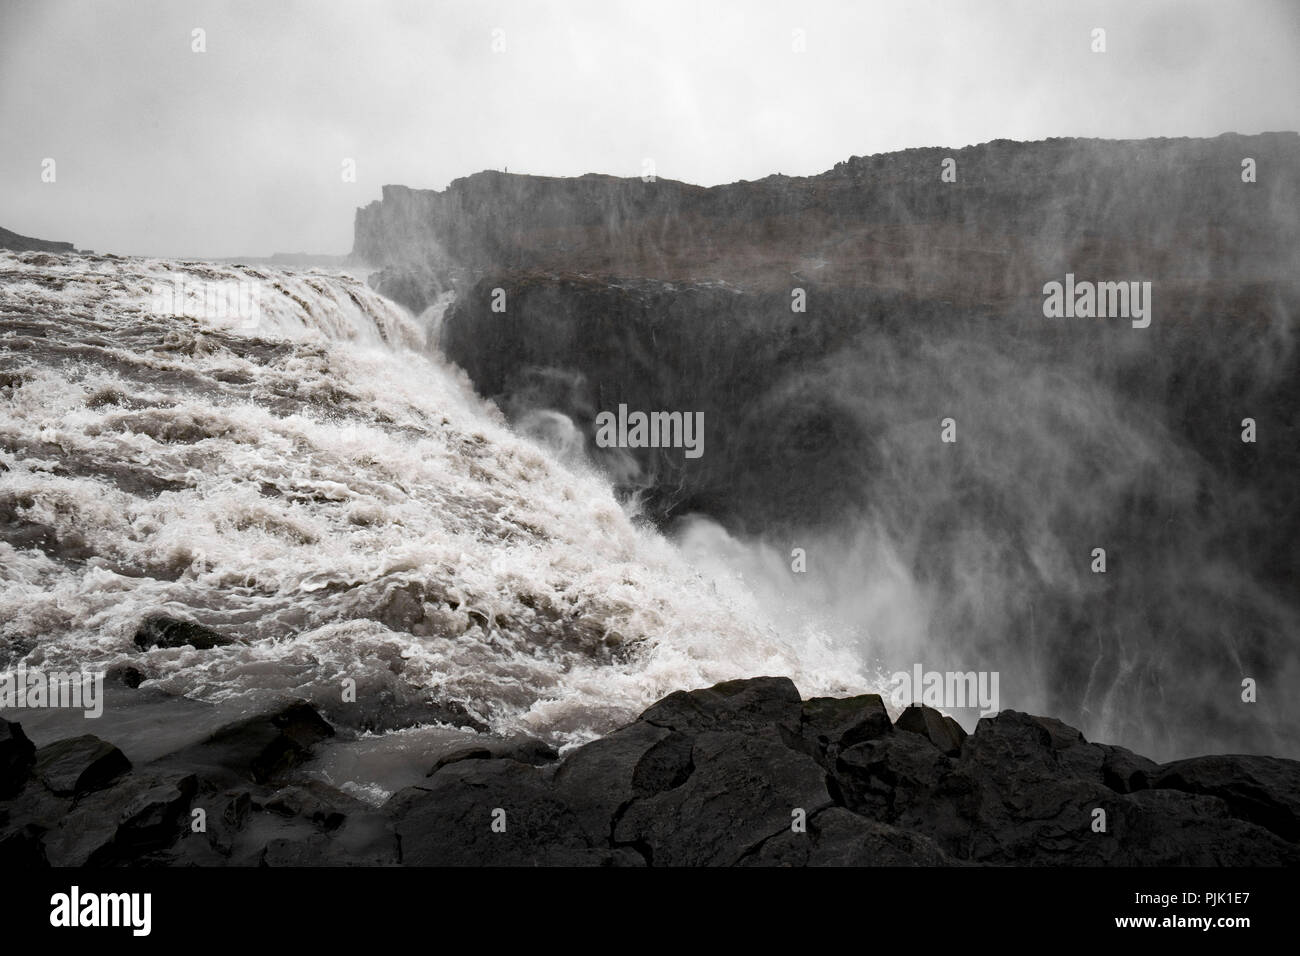 The mighty waterfall Dettifoss in a rough rocky environment - Stock Image